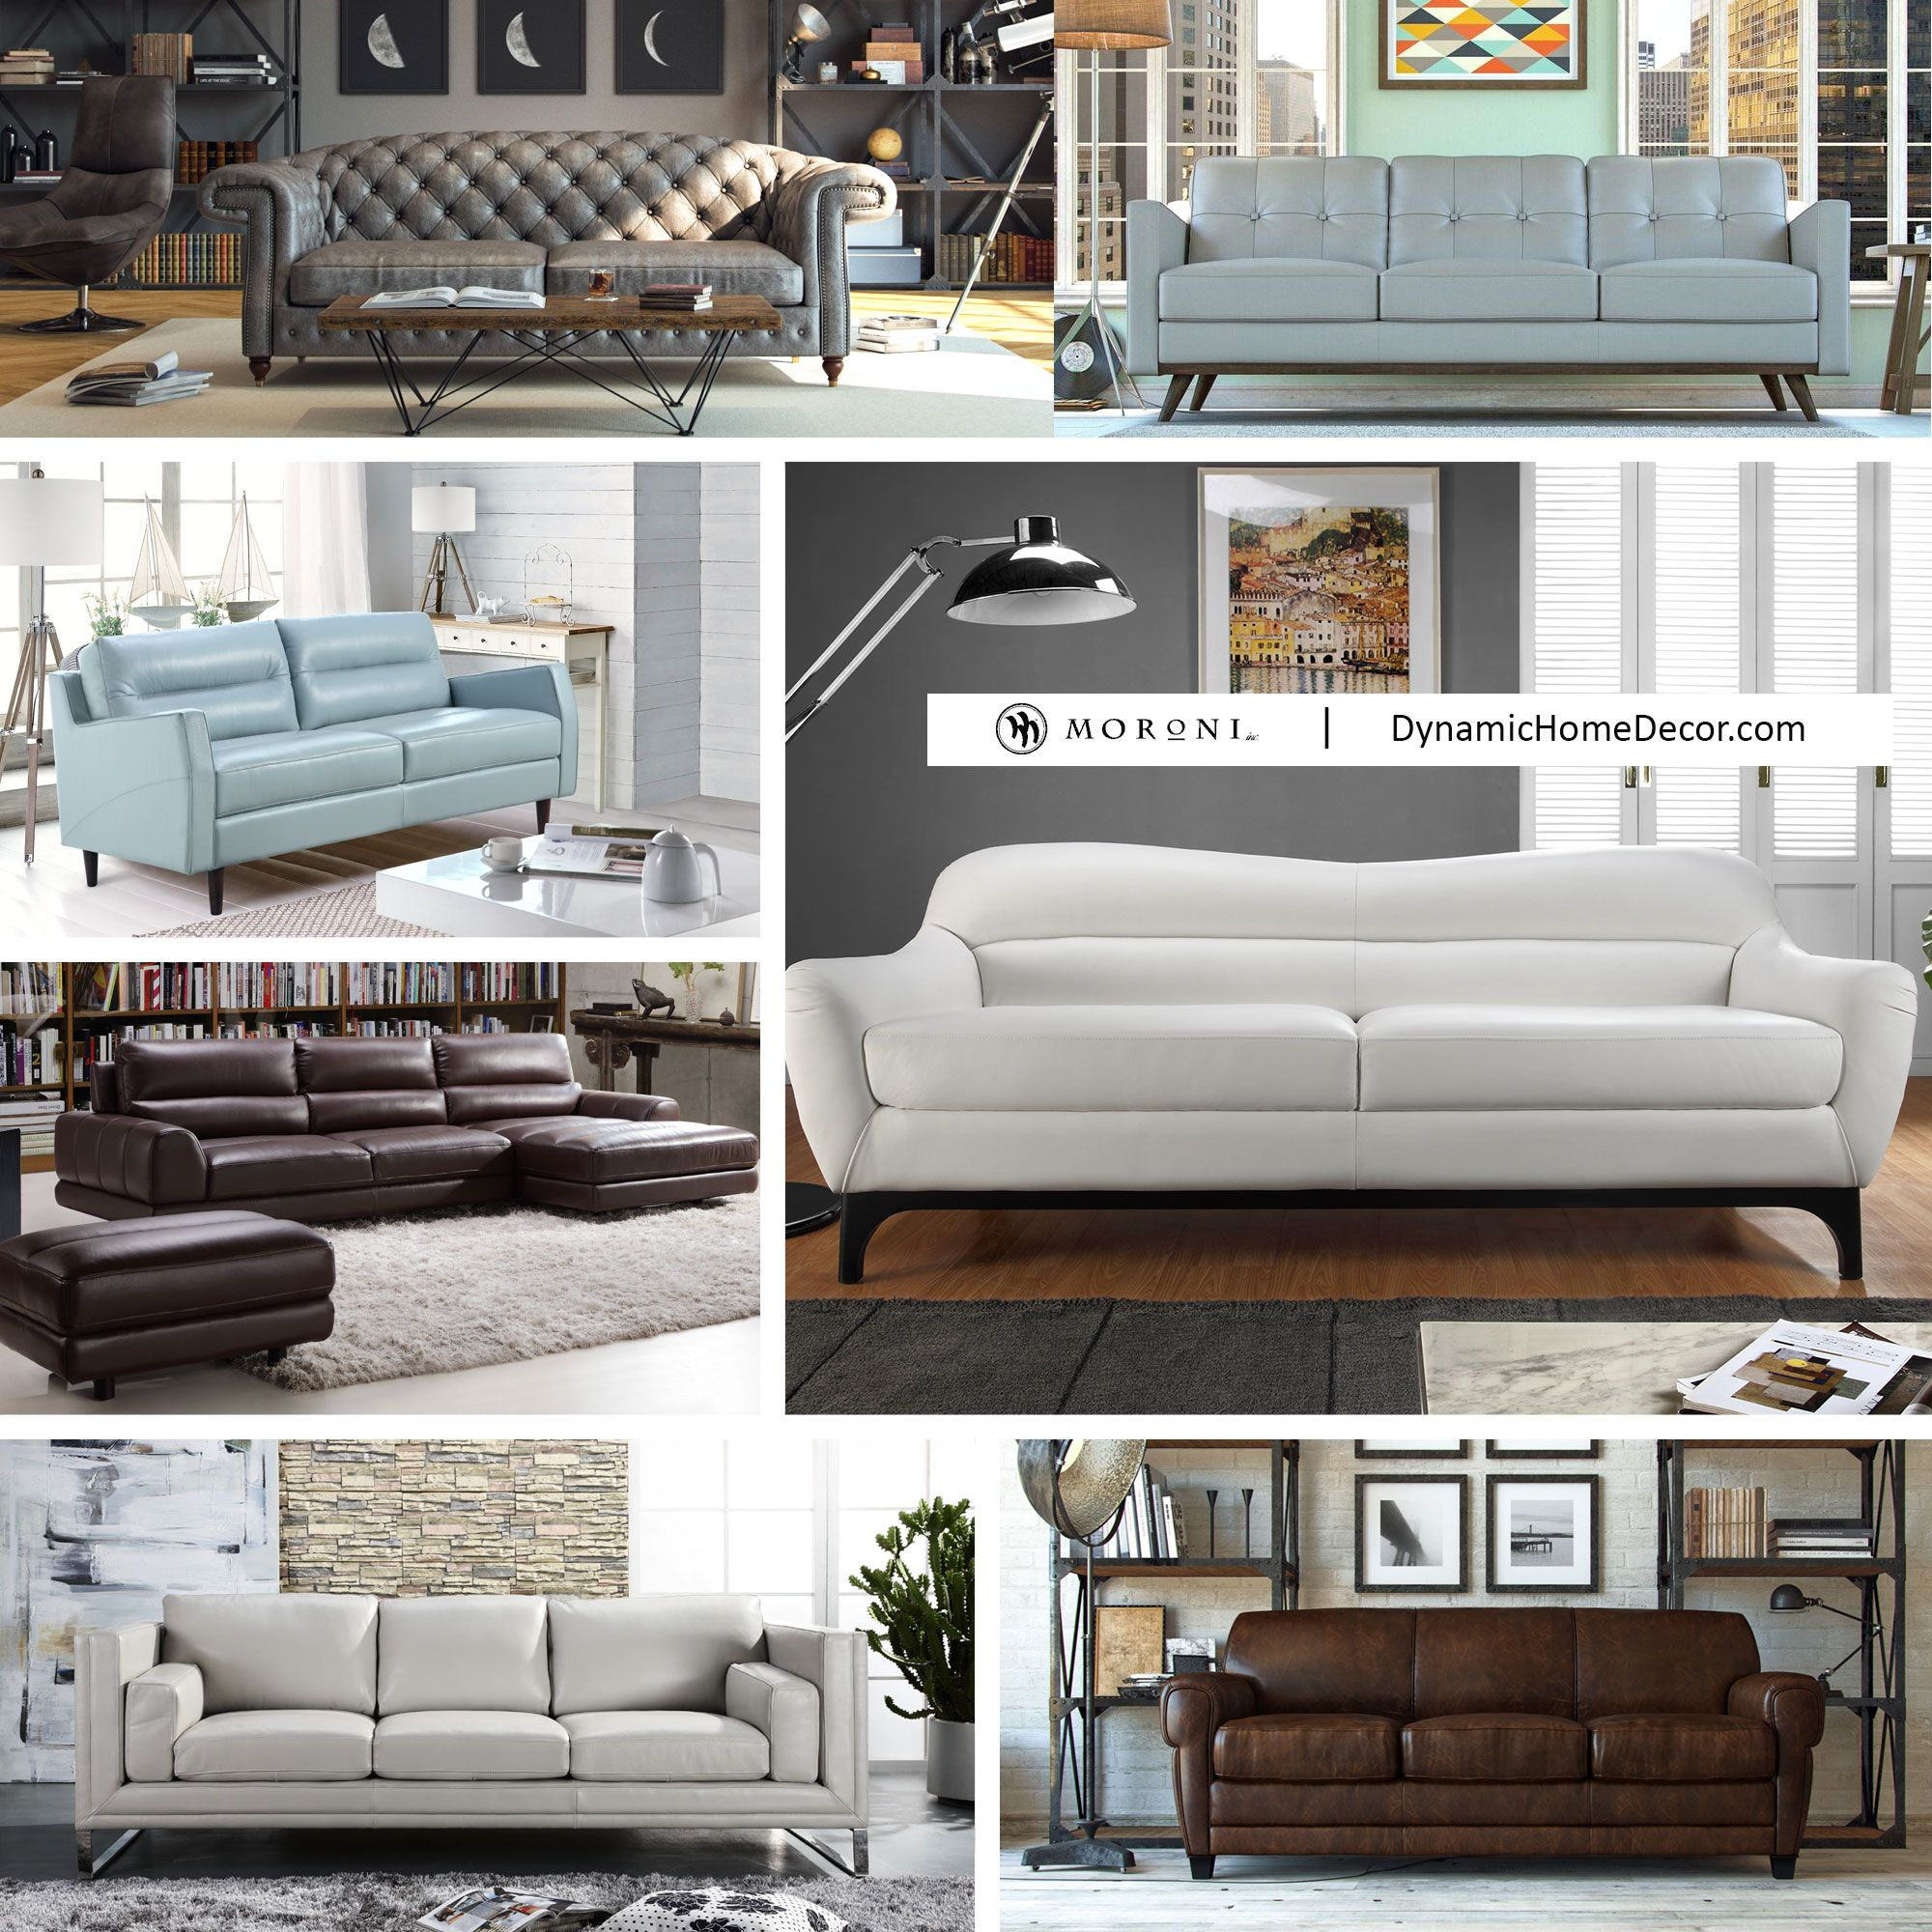 #Dynamichome #Dynamichomedecor #Leather #Sofa #Furniture #Homedecor # Interiors #Interiorinspo